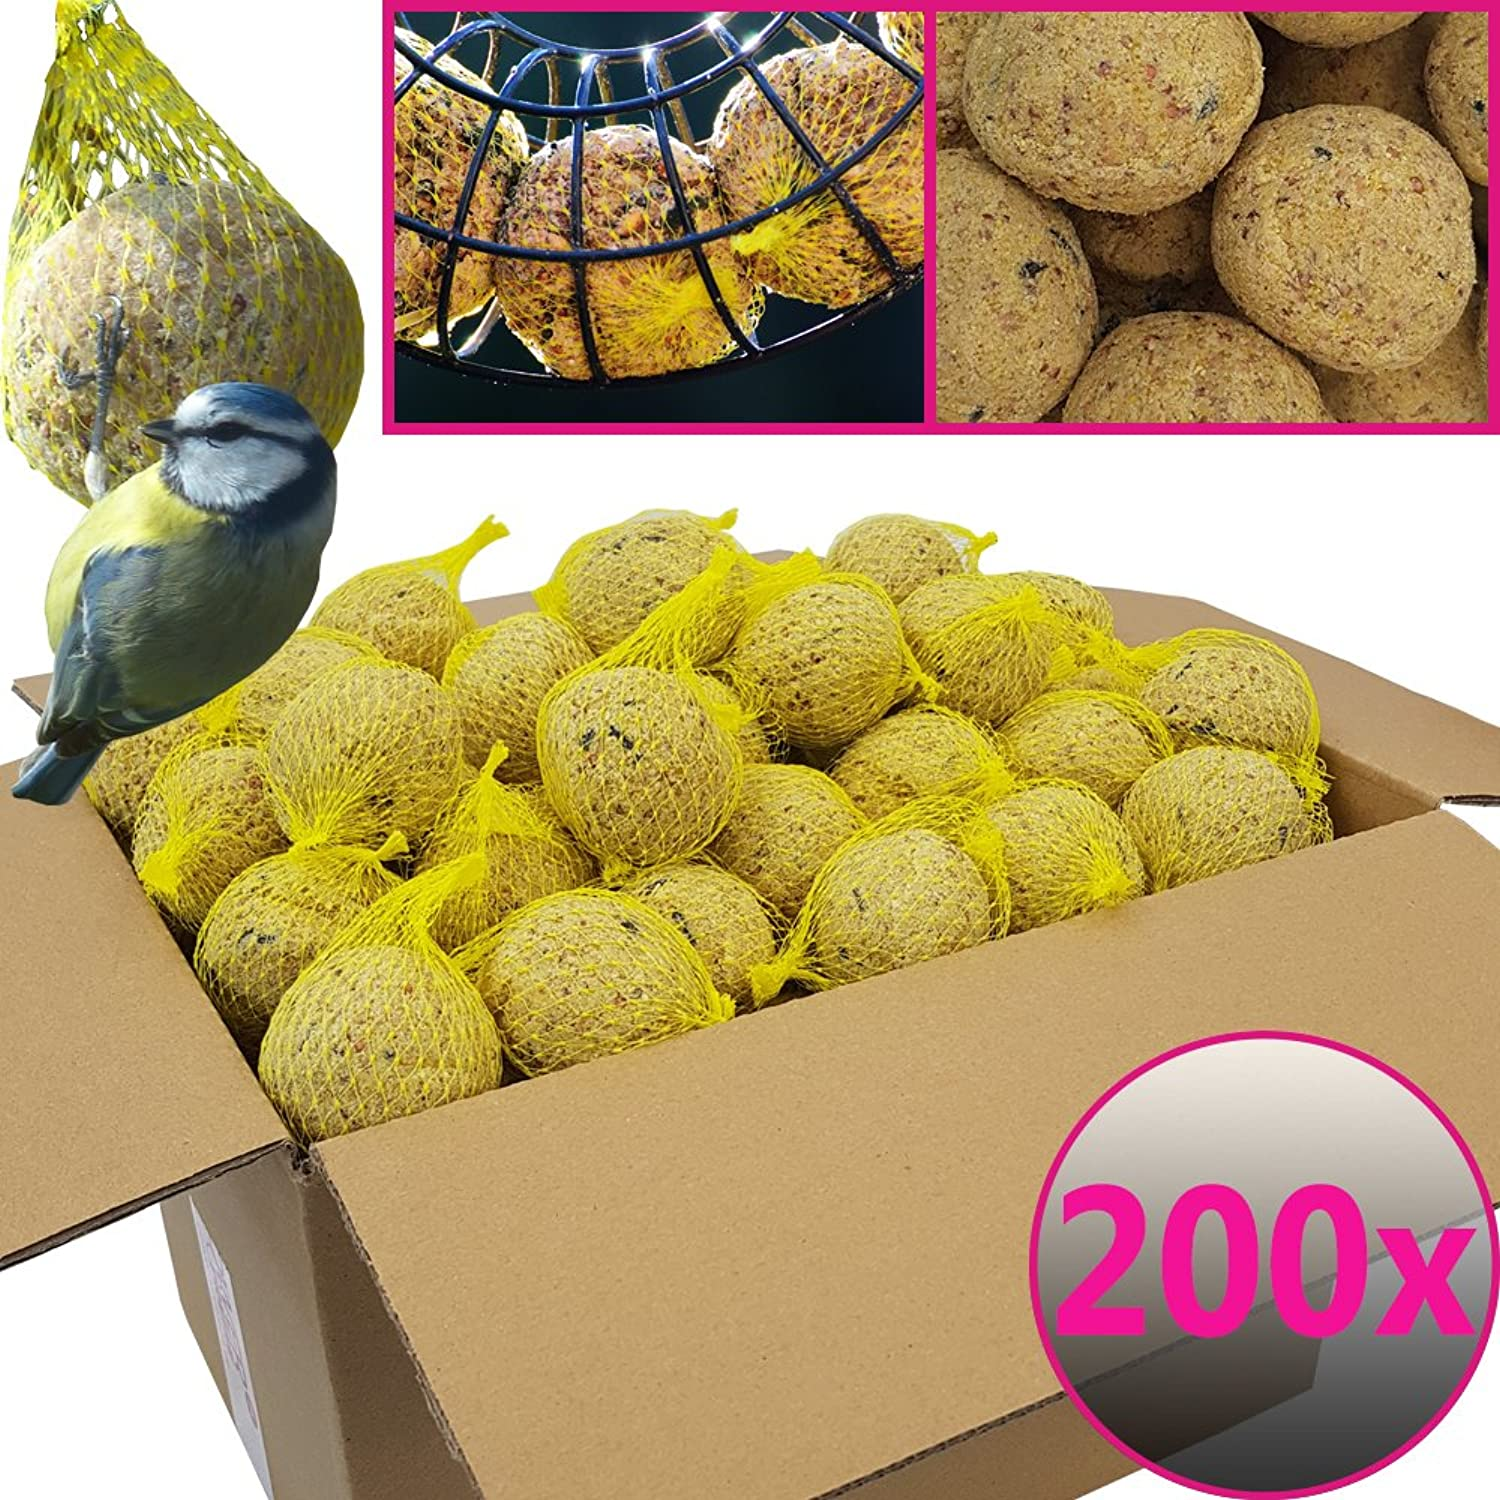 Netted Fat Balls for Wild Birds  200 balls = 18 kg  Natural food with great energy intake for wild birds  Grease balls with individual net for hanging